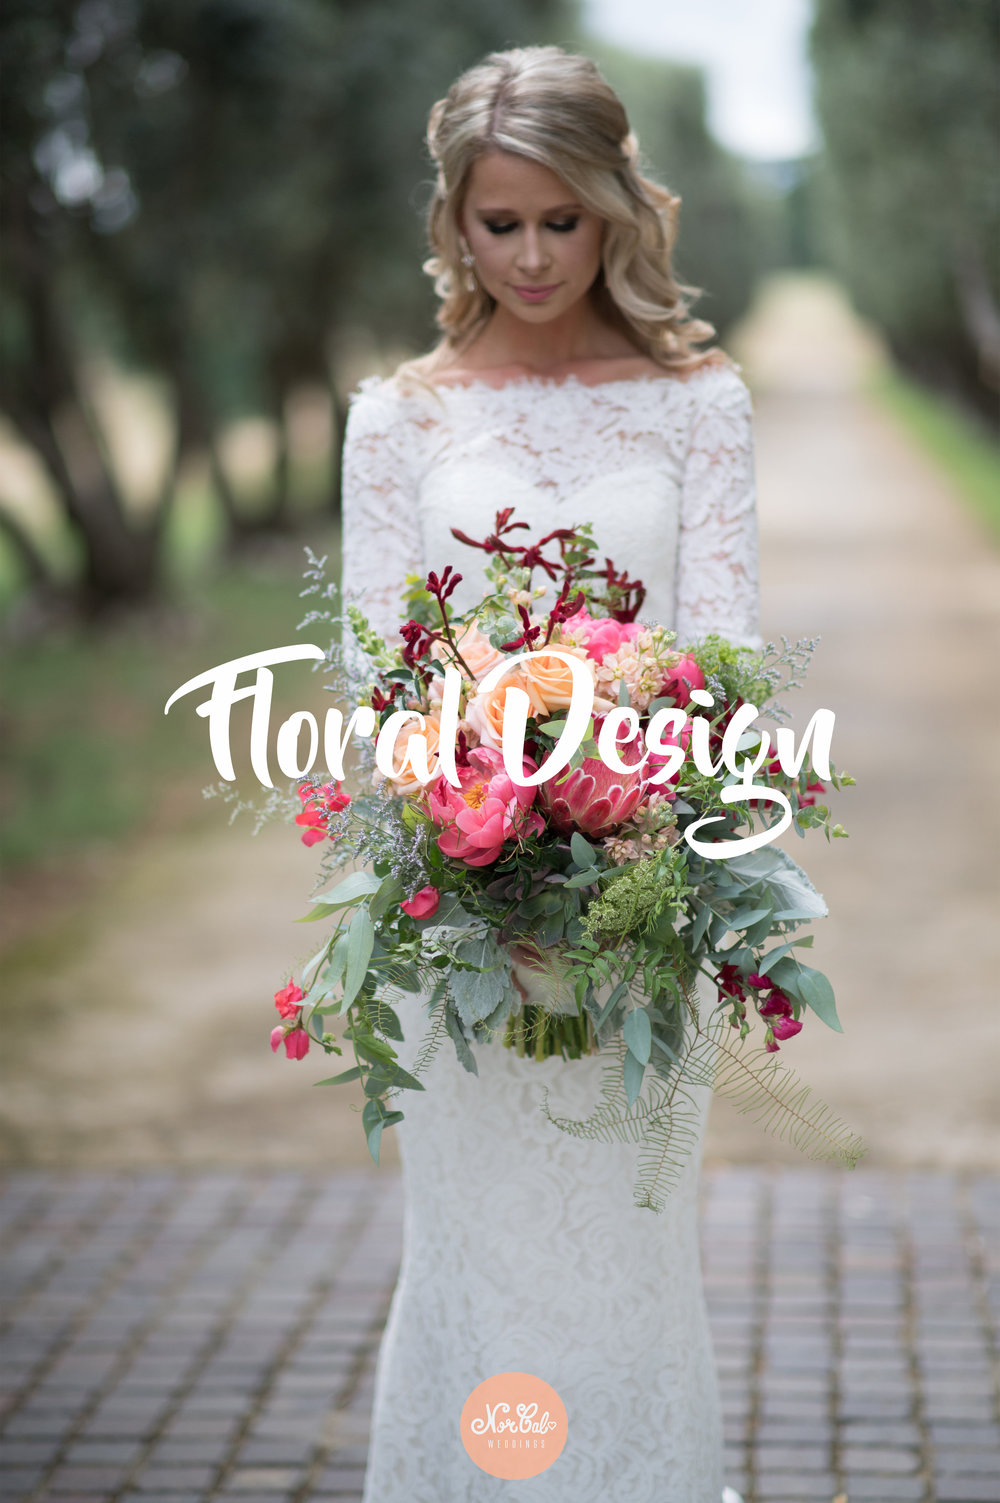 NorCal Weddings Floral Design Services.jpg